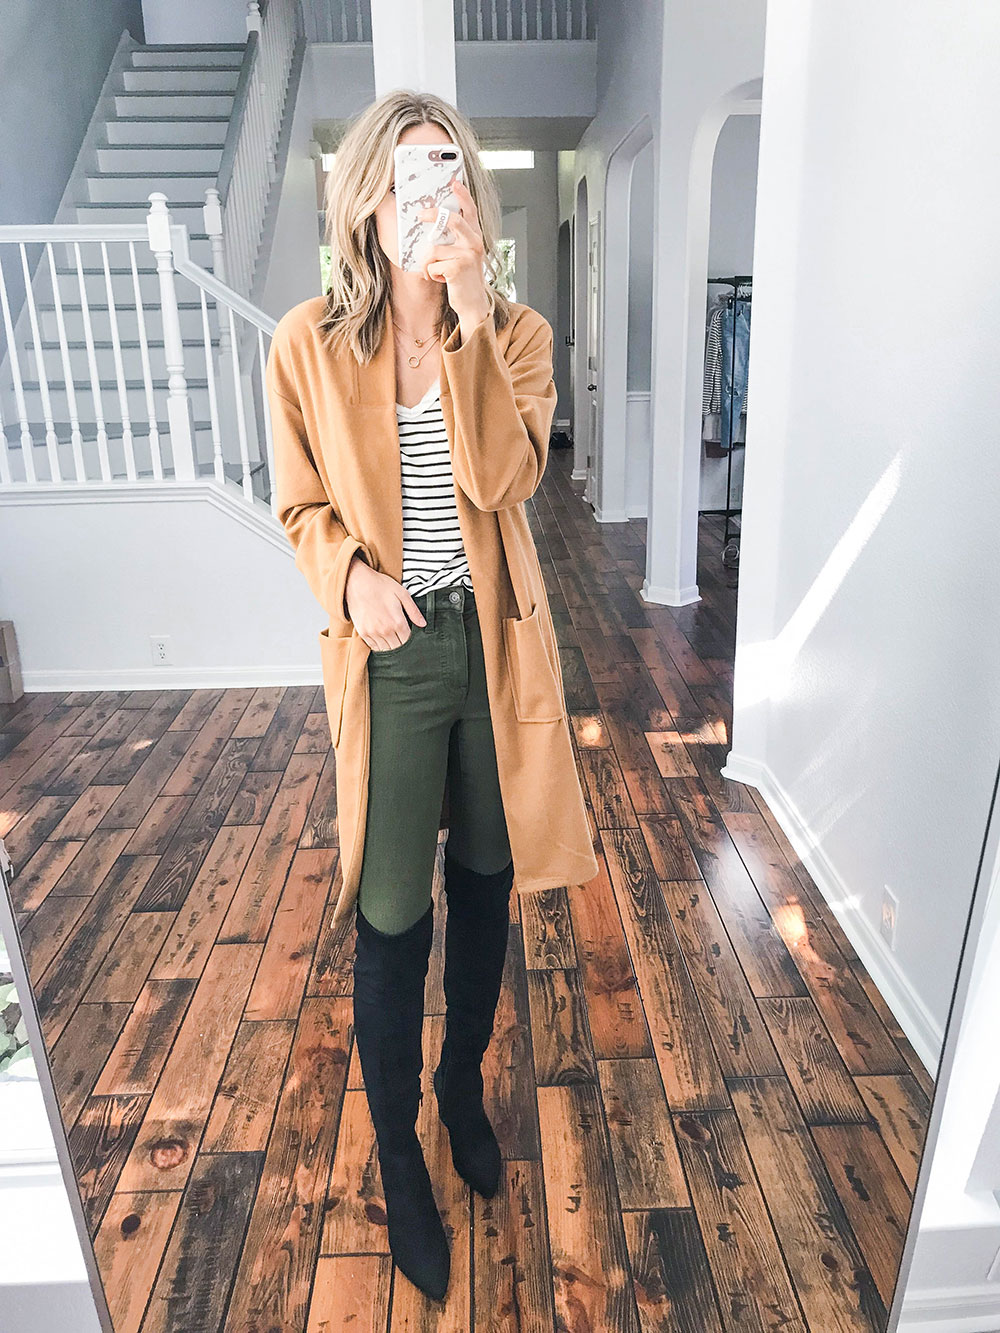 60f3f43c60a Nordstrom Anniversary Sale 16. Steve Madden OTK Boots  86.90    After Sale   130